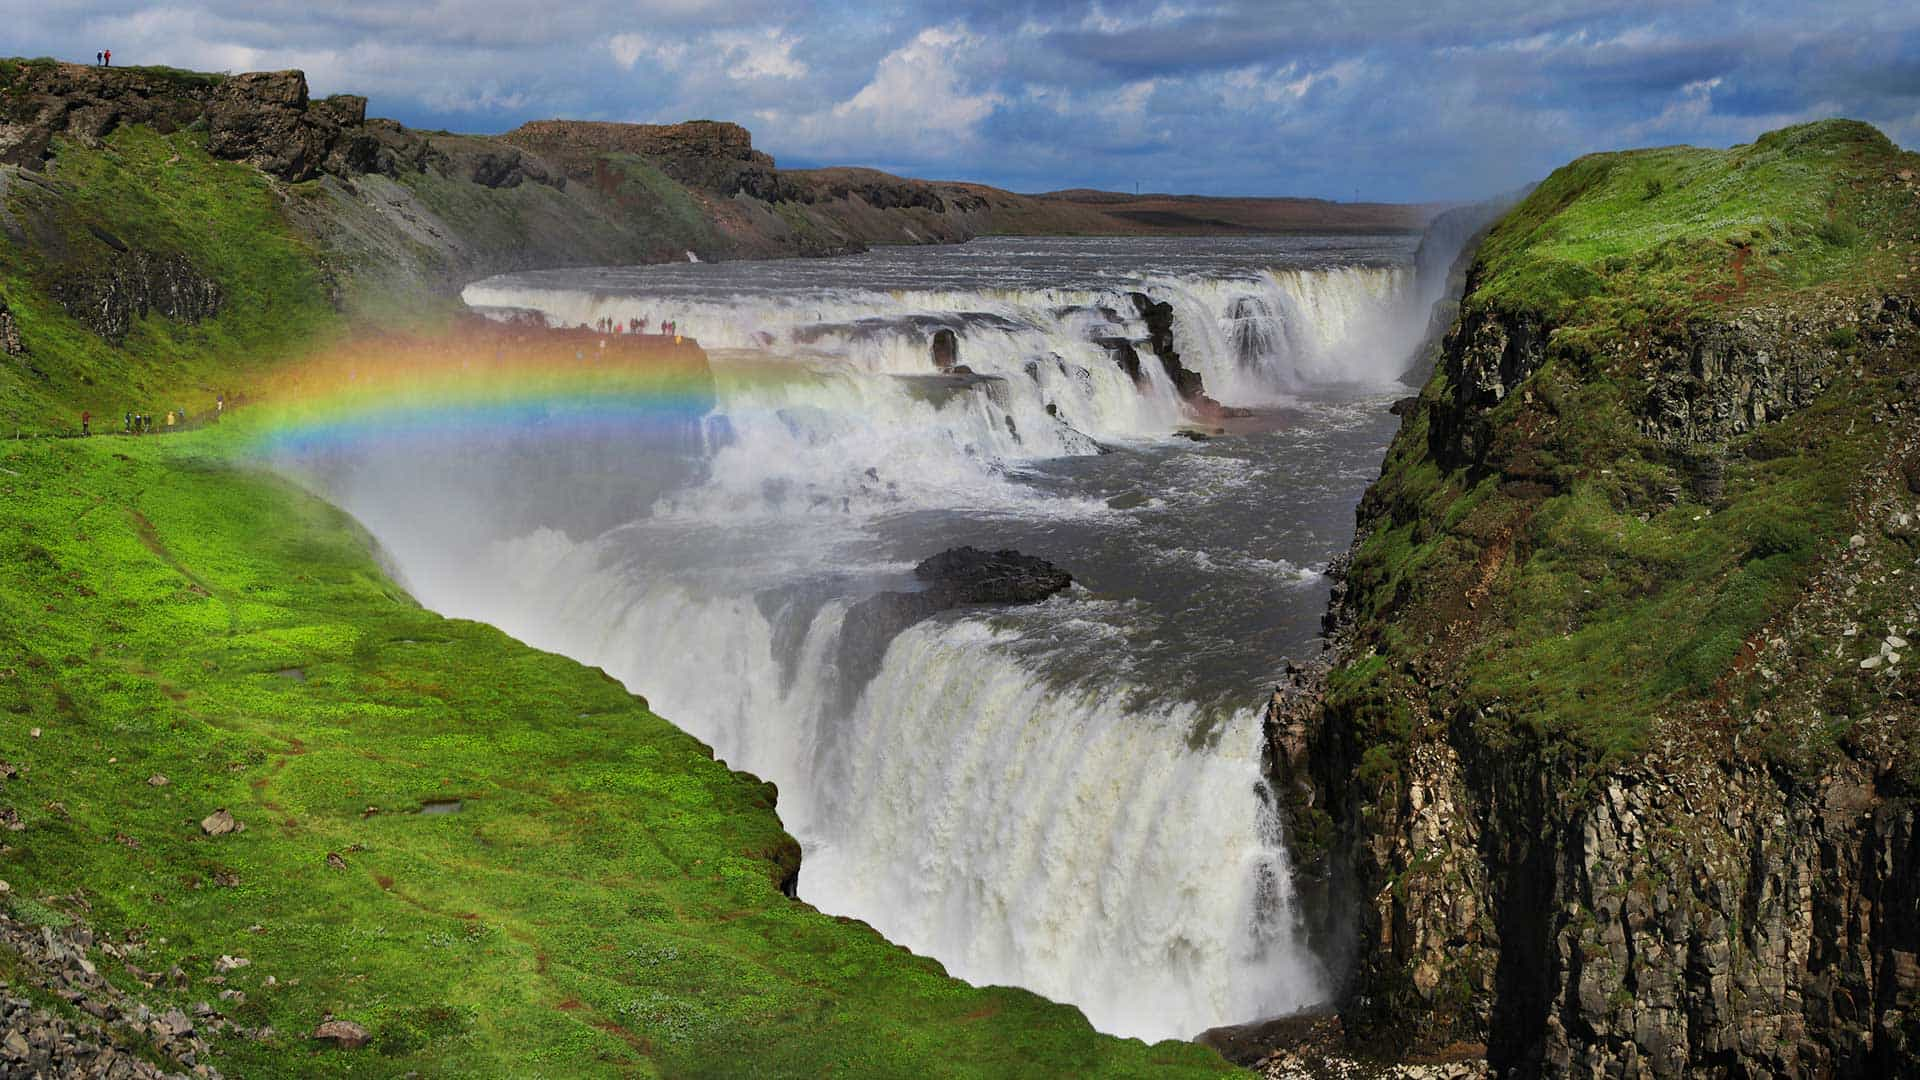 A rainbow glows in the mist at Gullfoss waterfall in Iceland